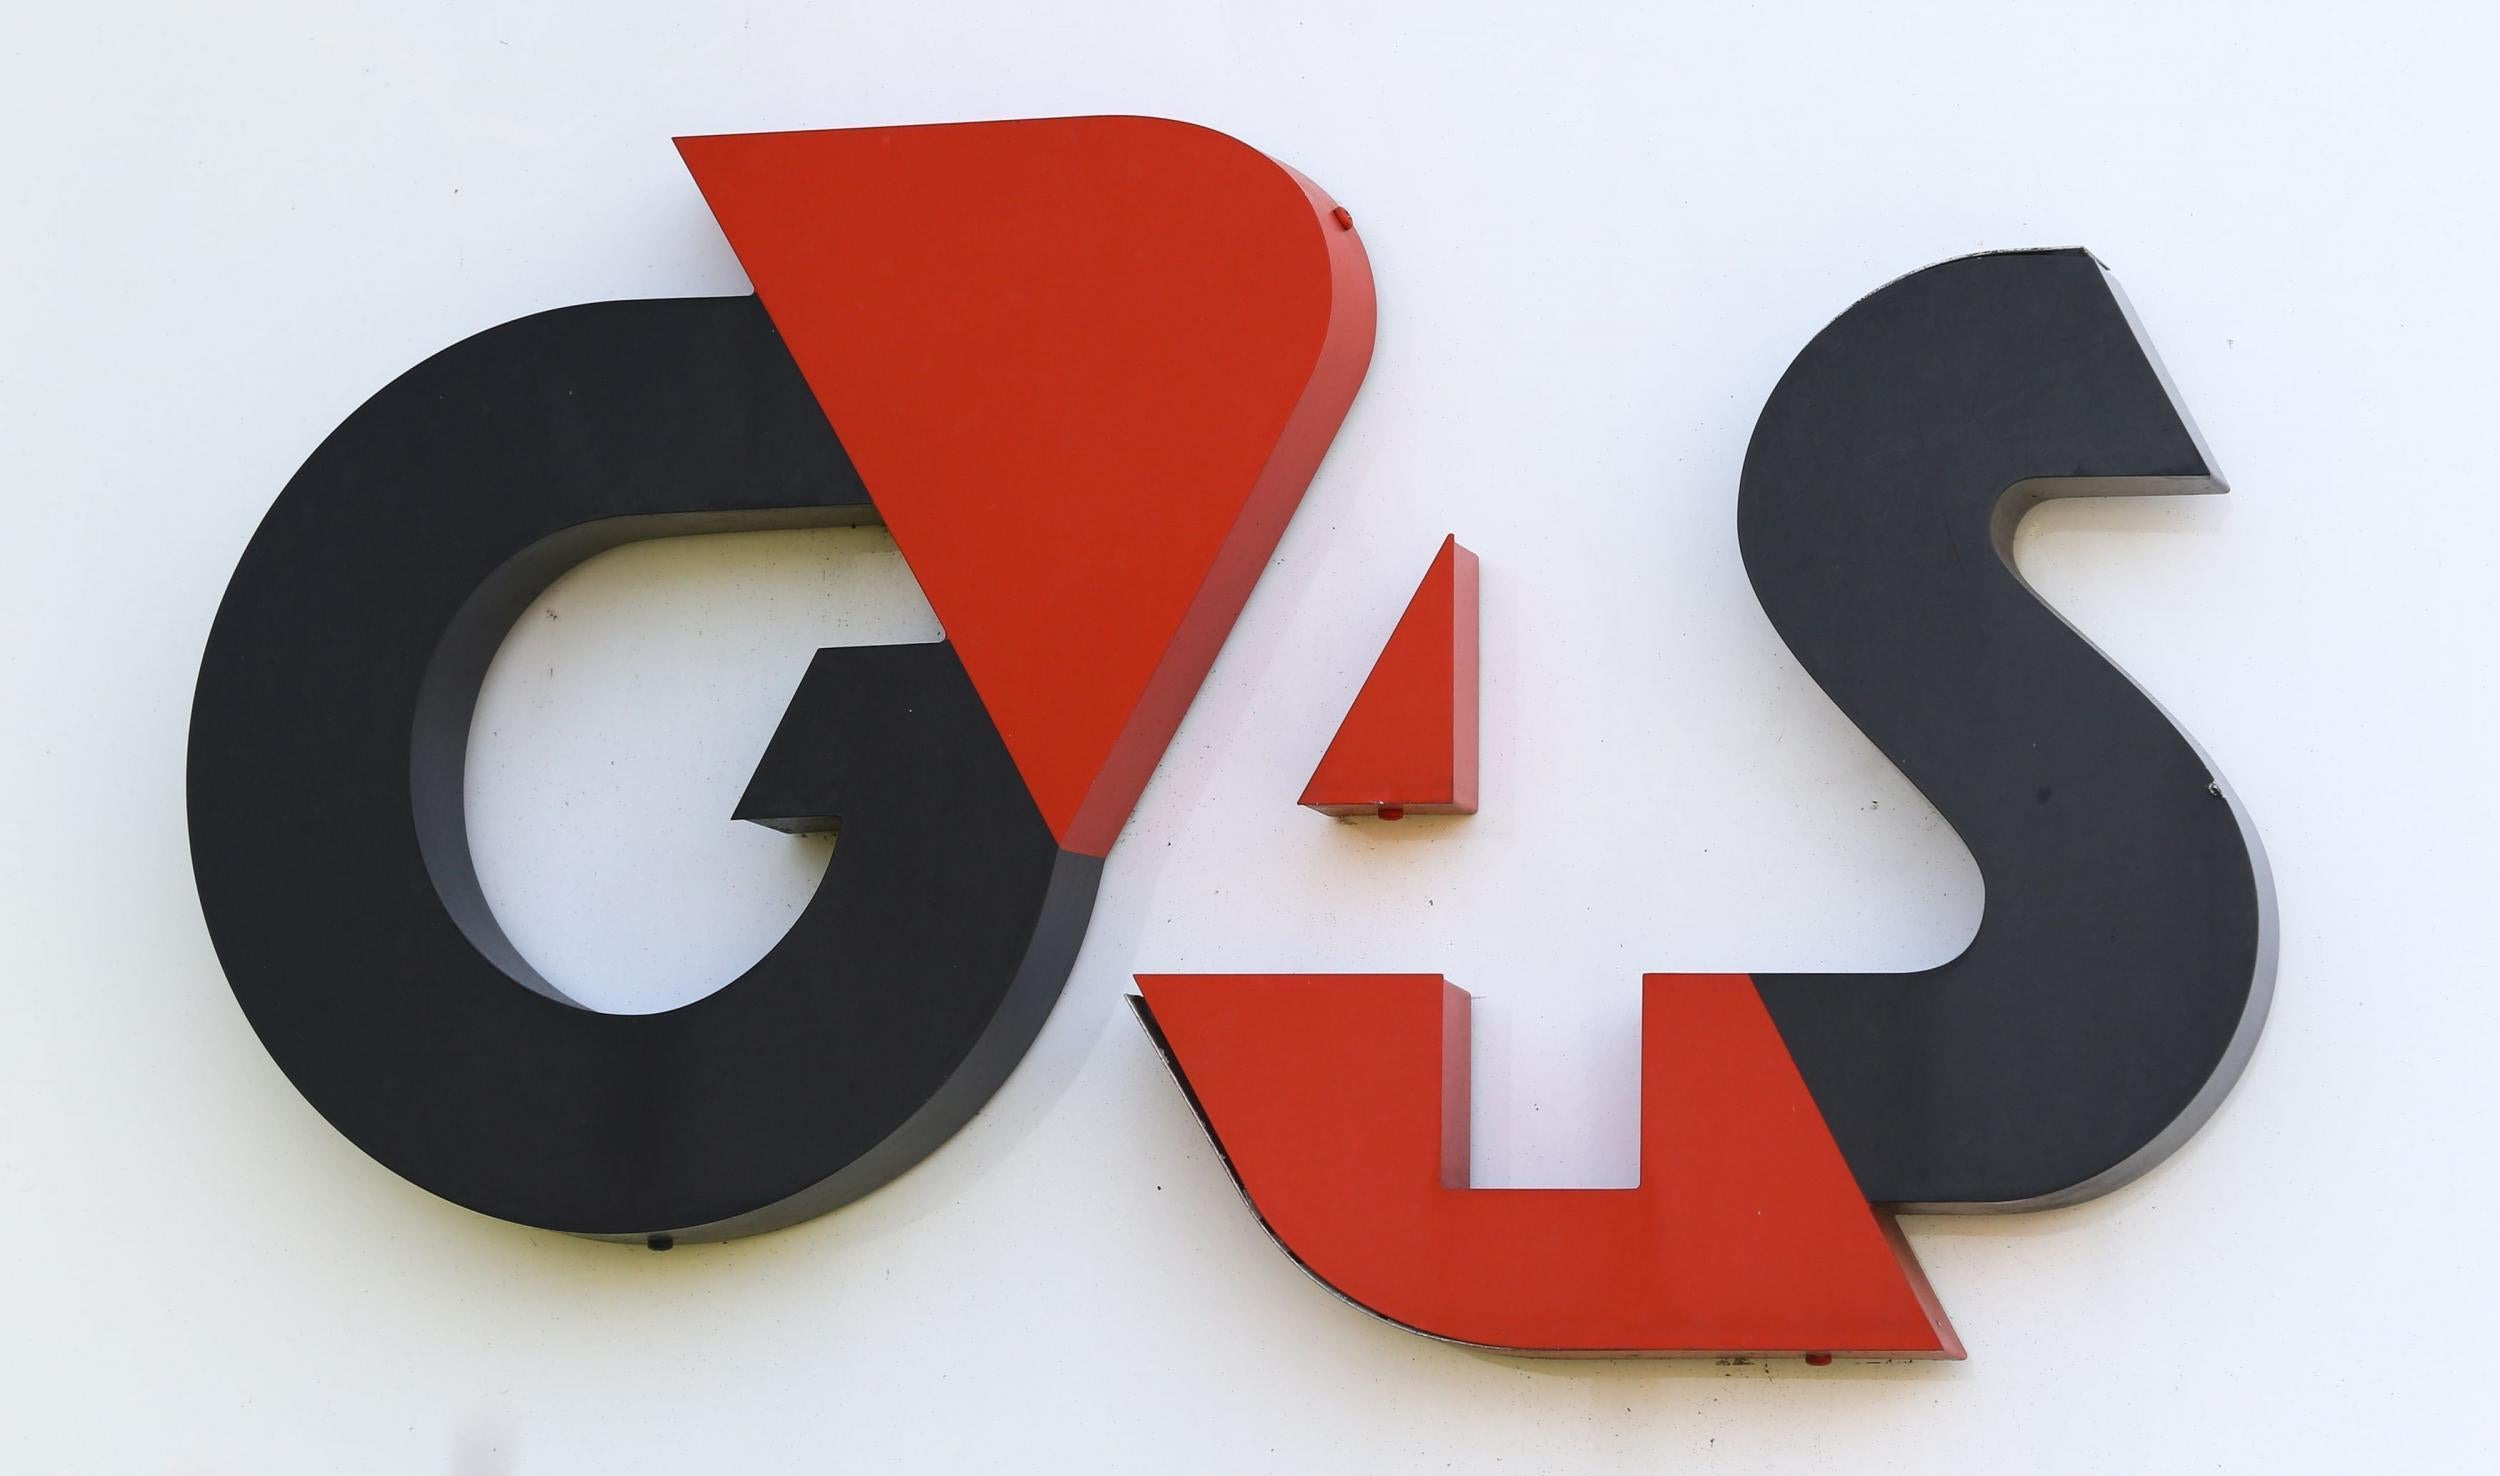 Minister admits G4S electronic tags may have wrongly sent people to prison